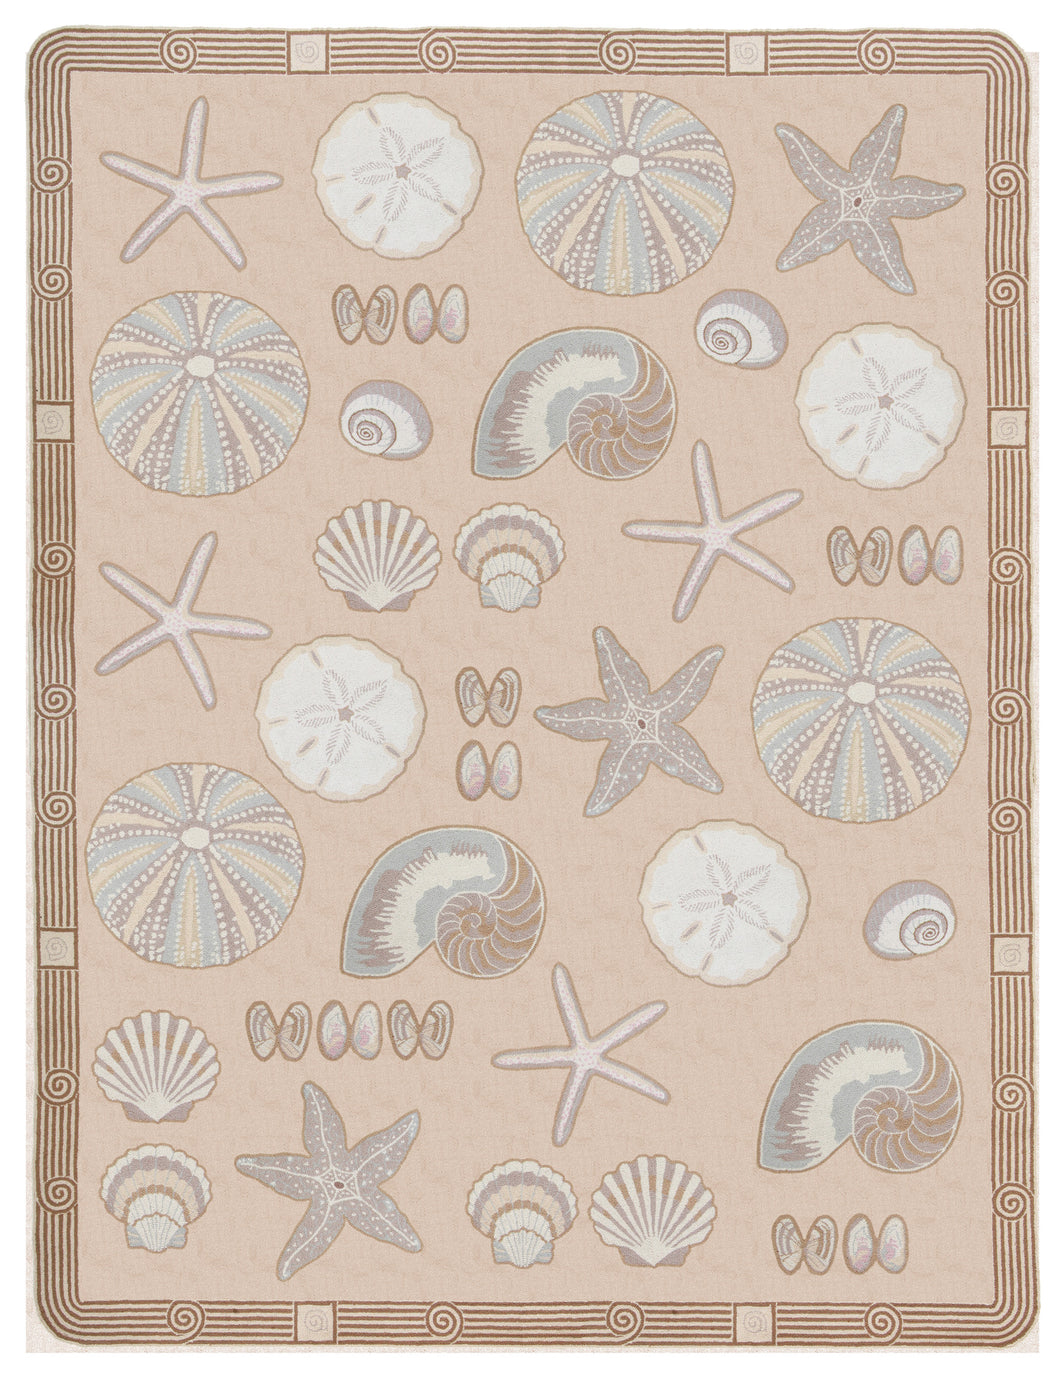 Cape Contemporary Shells Art Deco 9 x 12 Beige R1364BG-O